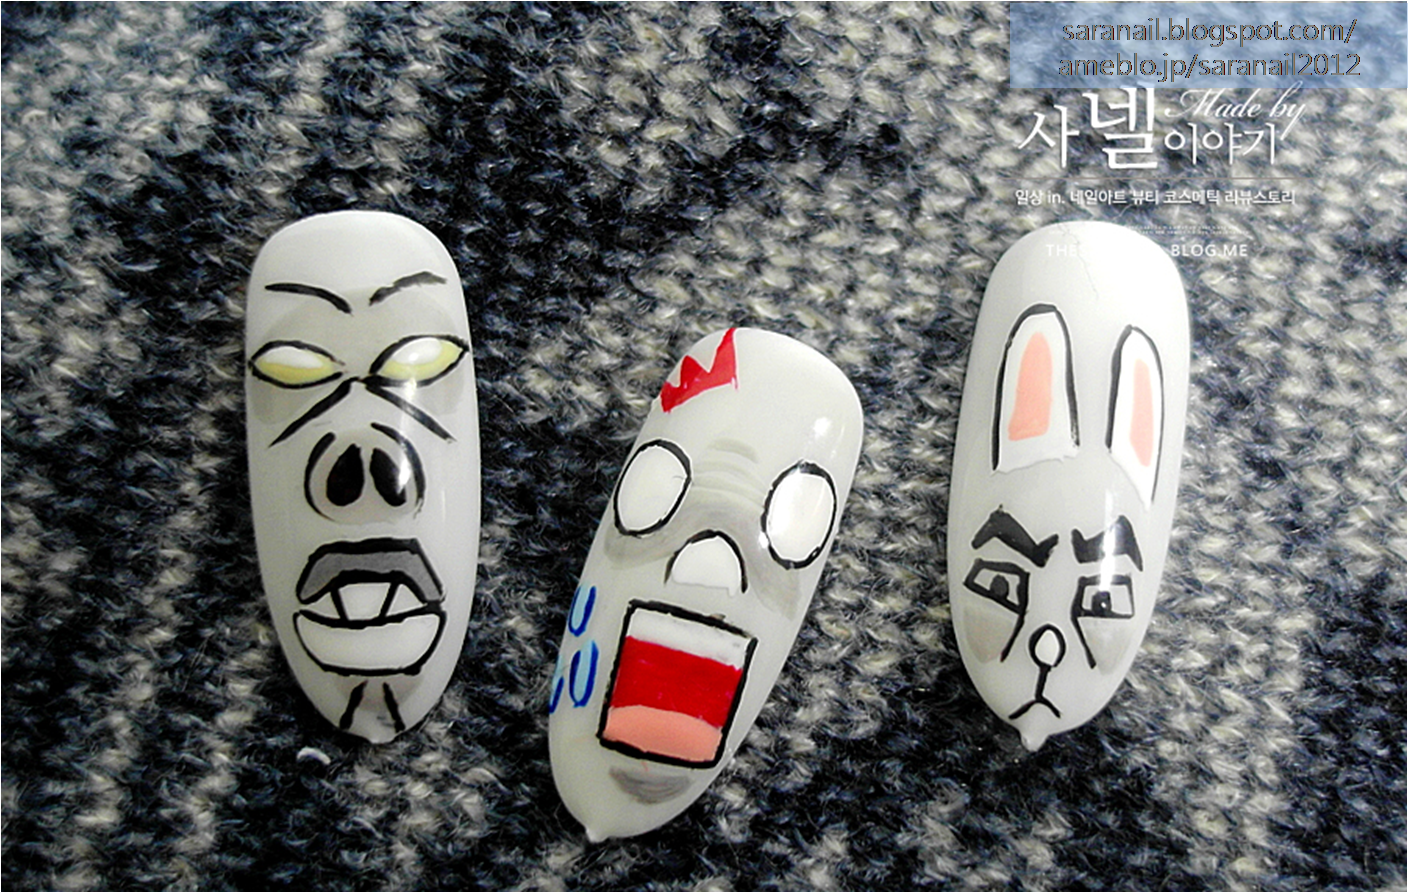 Emoticon Pattern Nail Art/ Self Nail Art/ Line Emoticon Nail Art/ Cute Rabbit Character/ Funny Emoticon